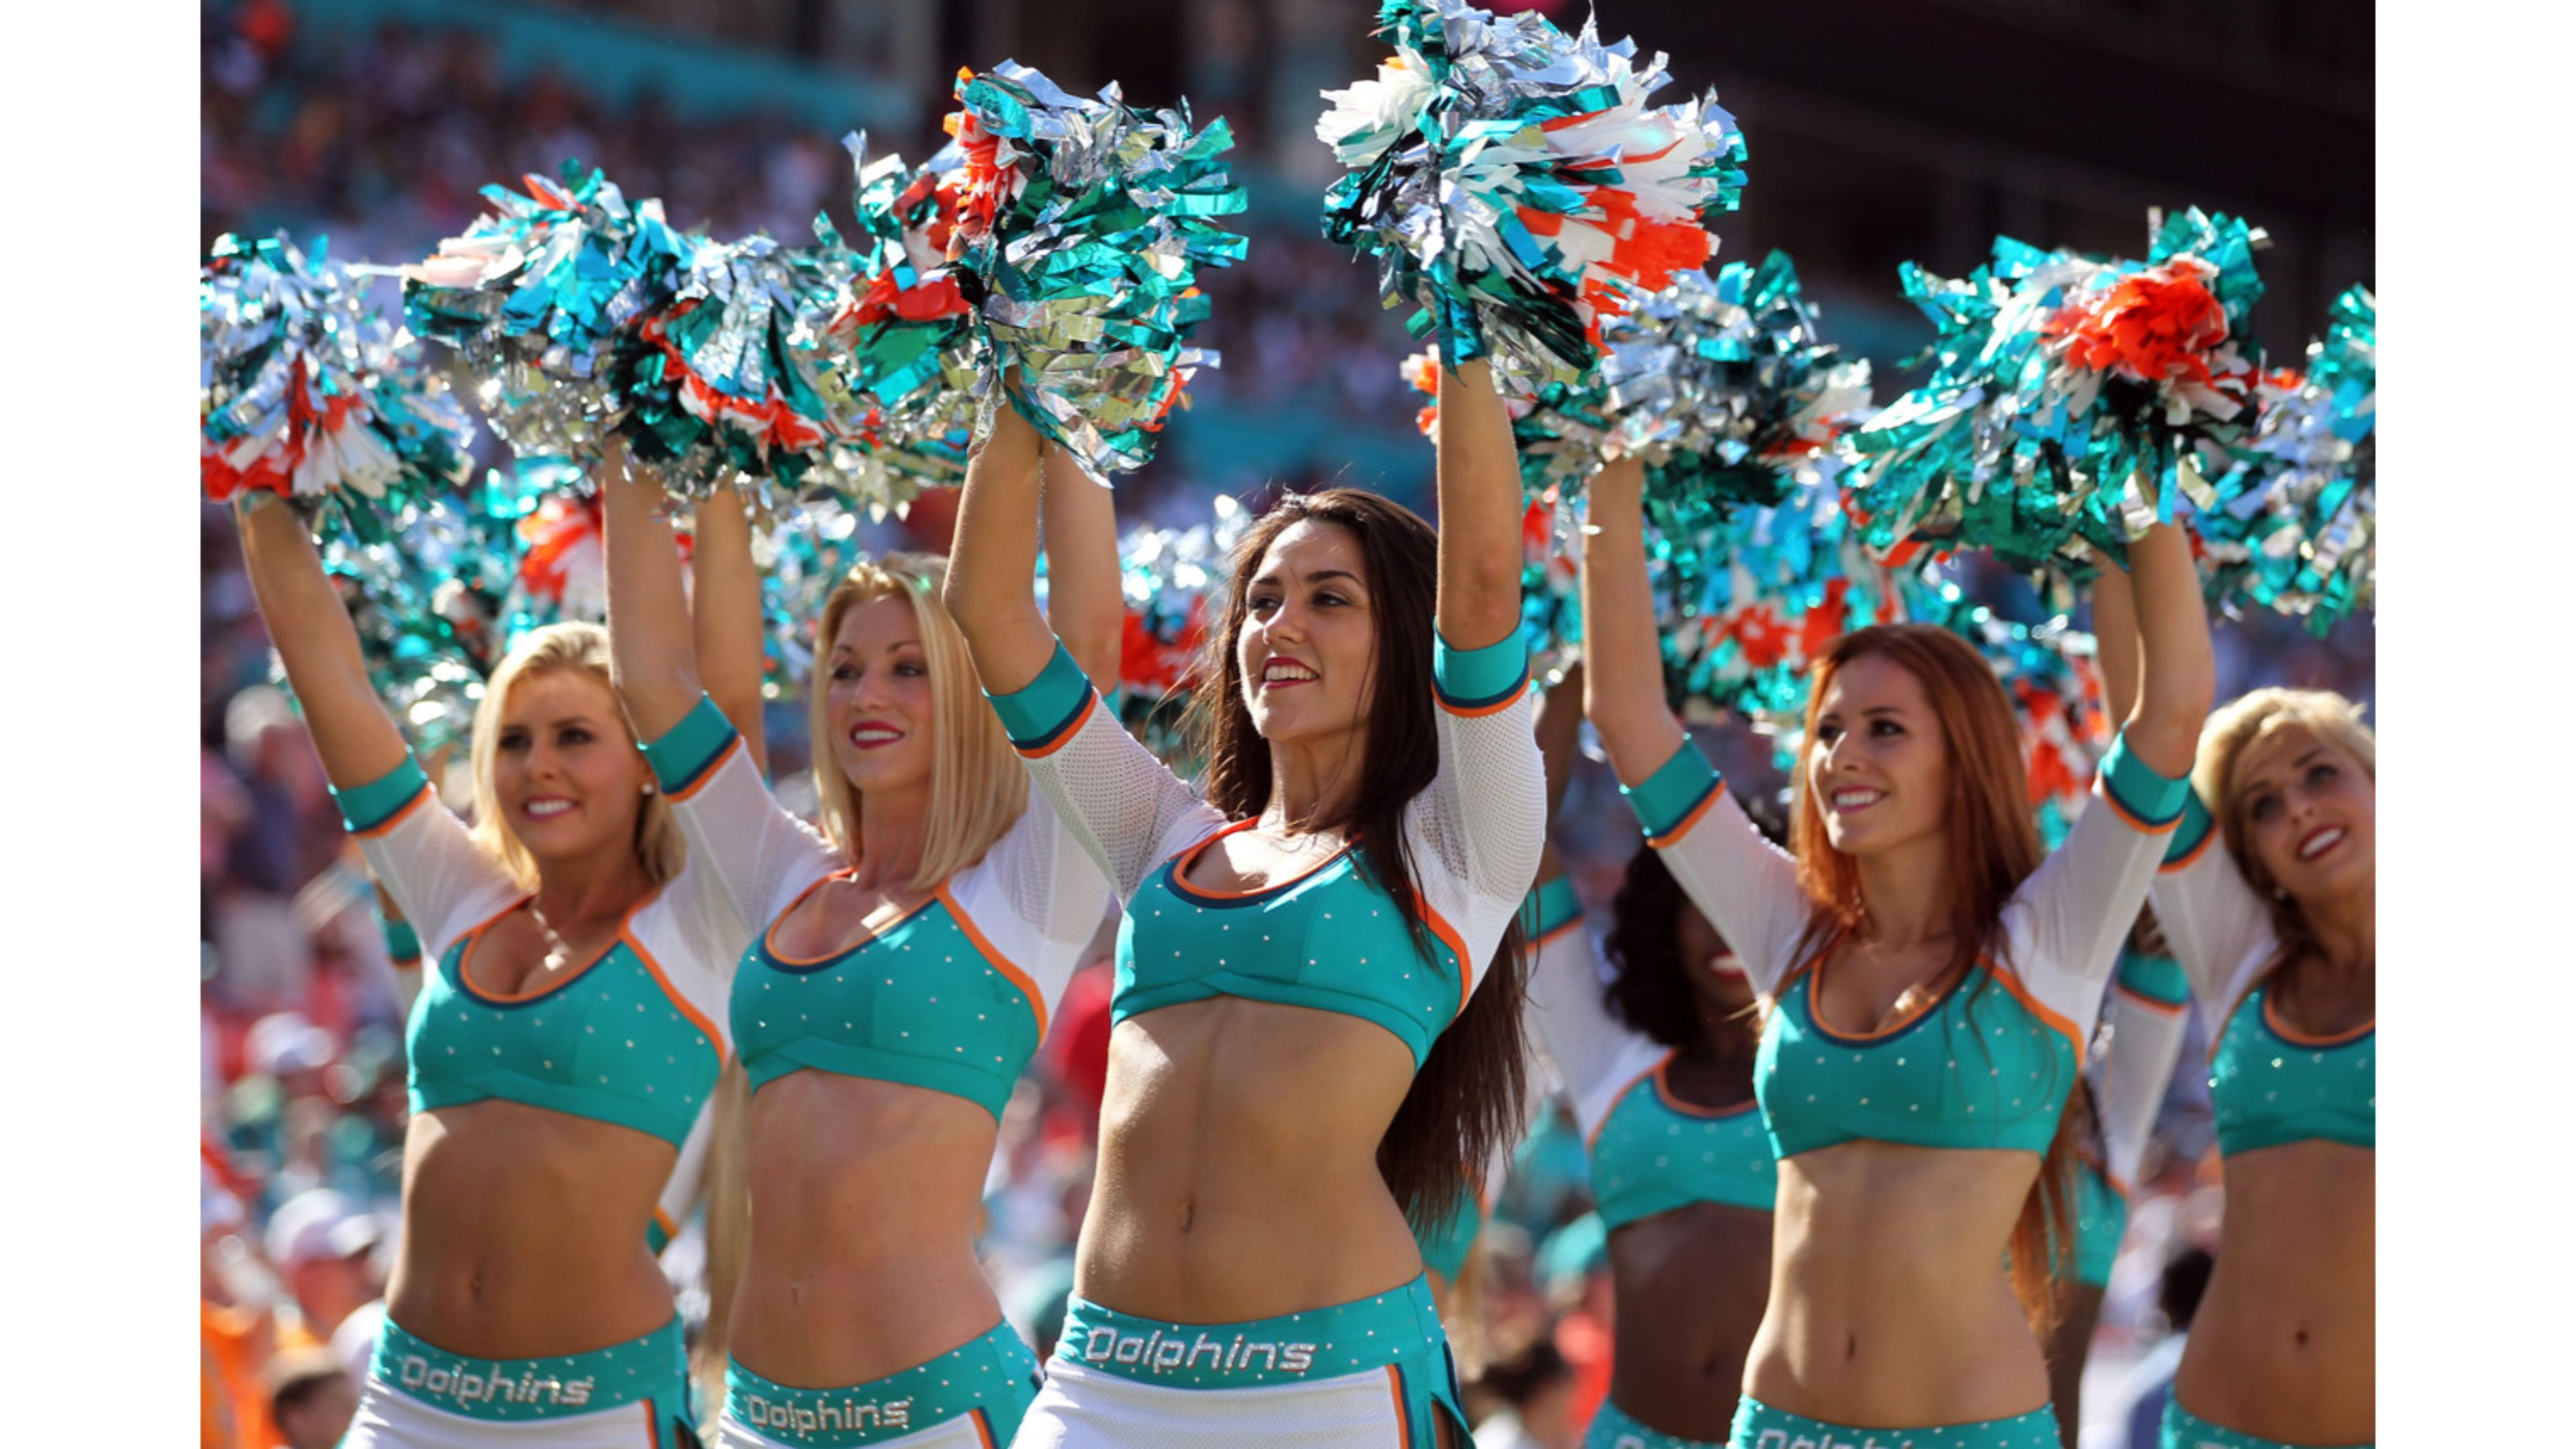 Cute Fairy Wallpaper 3d Download Miami Dolphins Cheerleaders Wallpaper Gallery